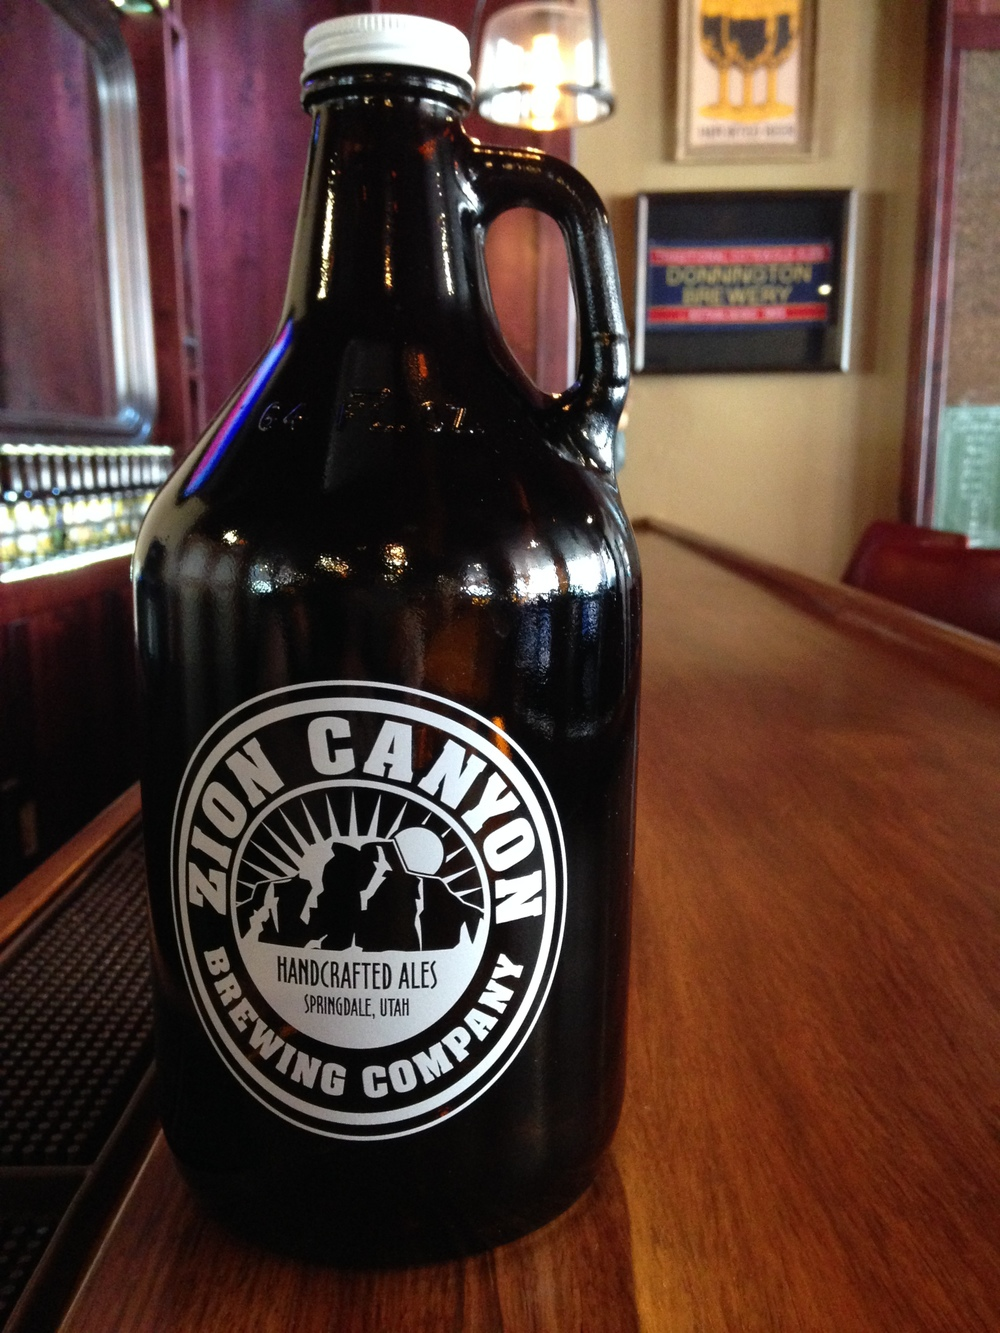 STOP by our Retail store next door to get new zion brewery merchandise. We fill growlers too!